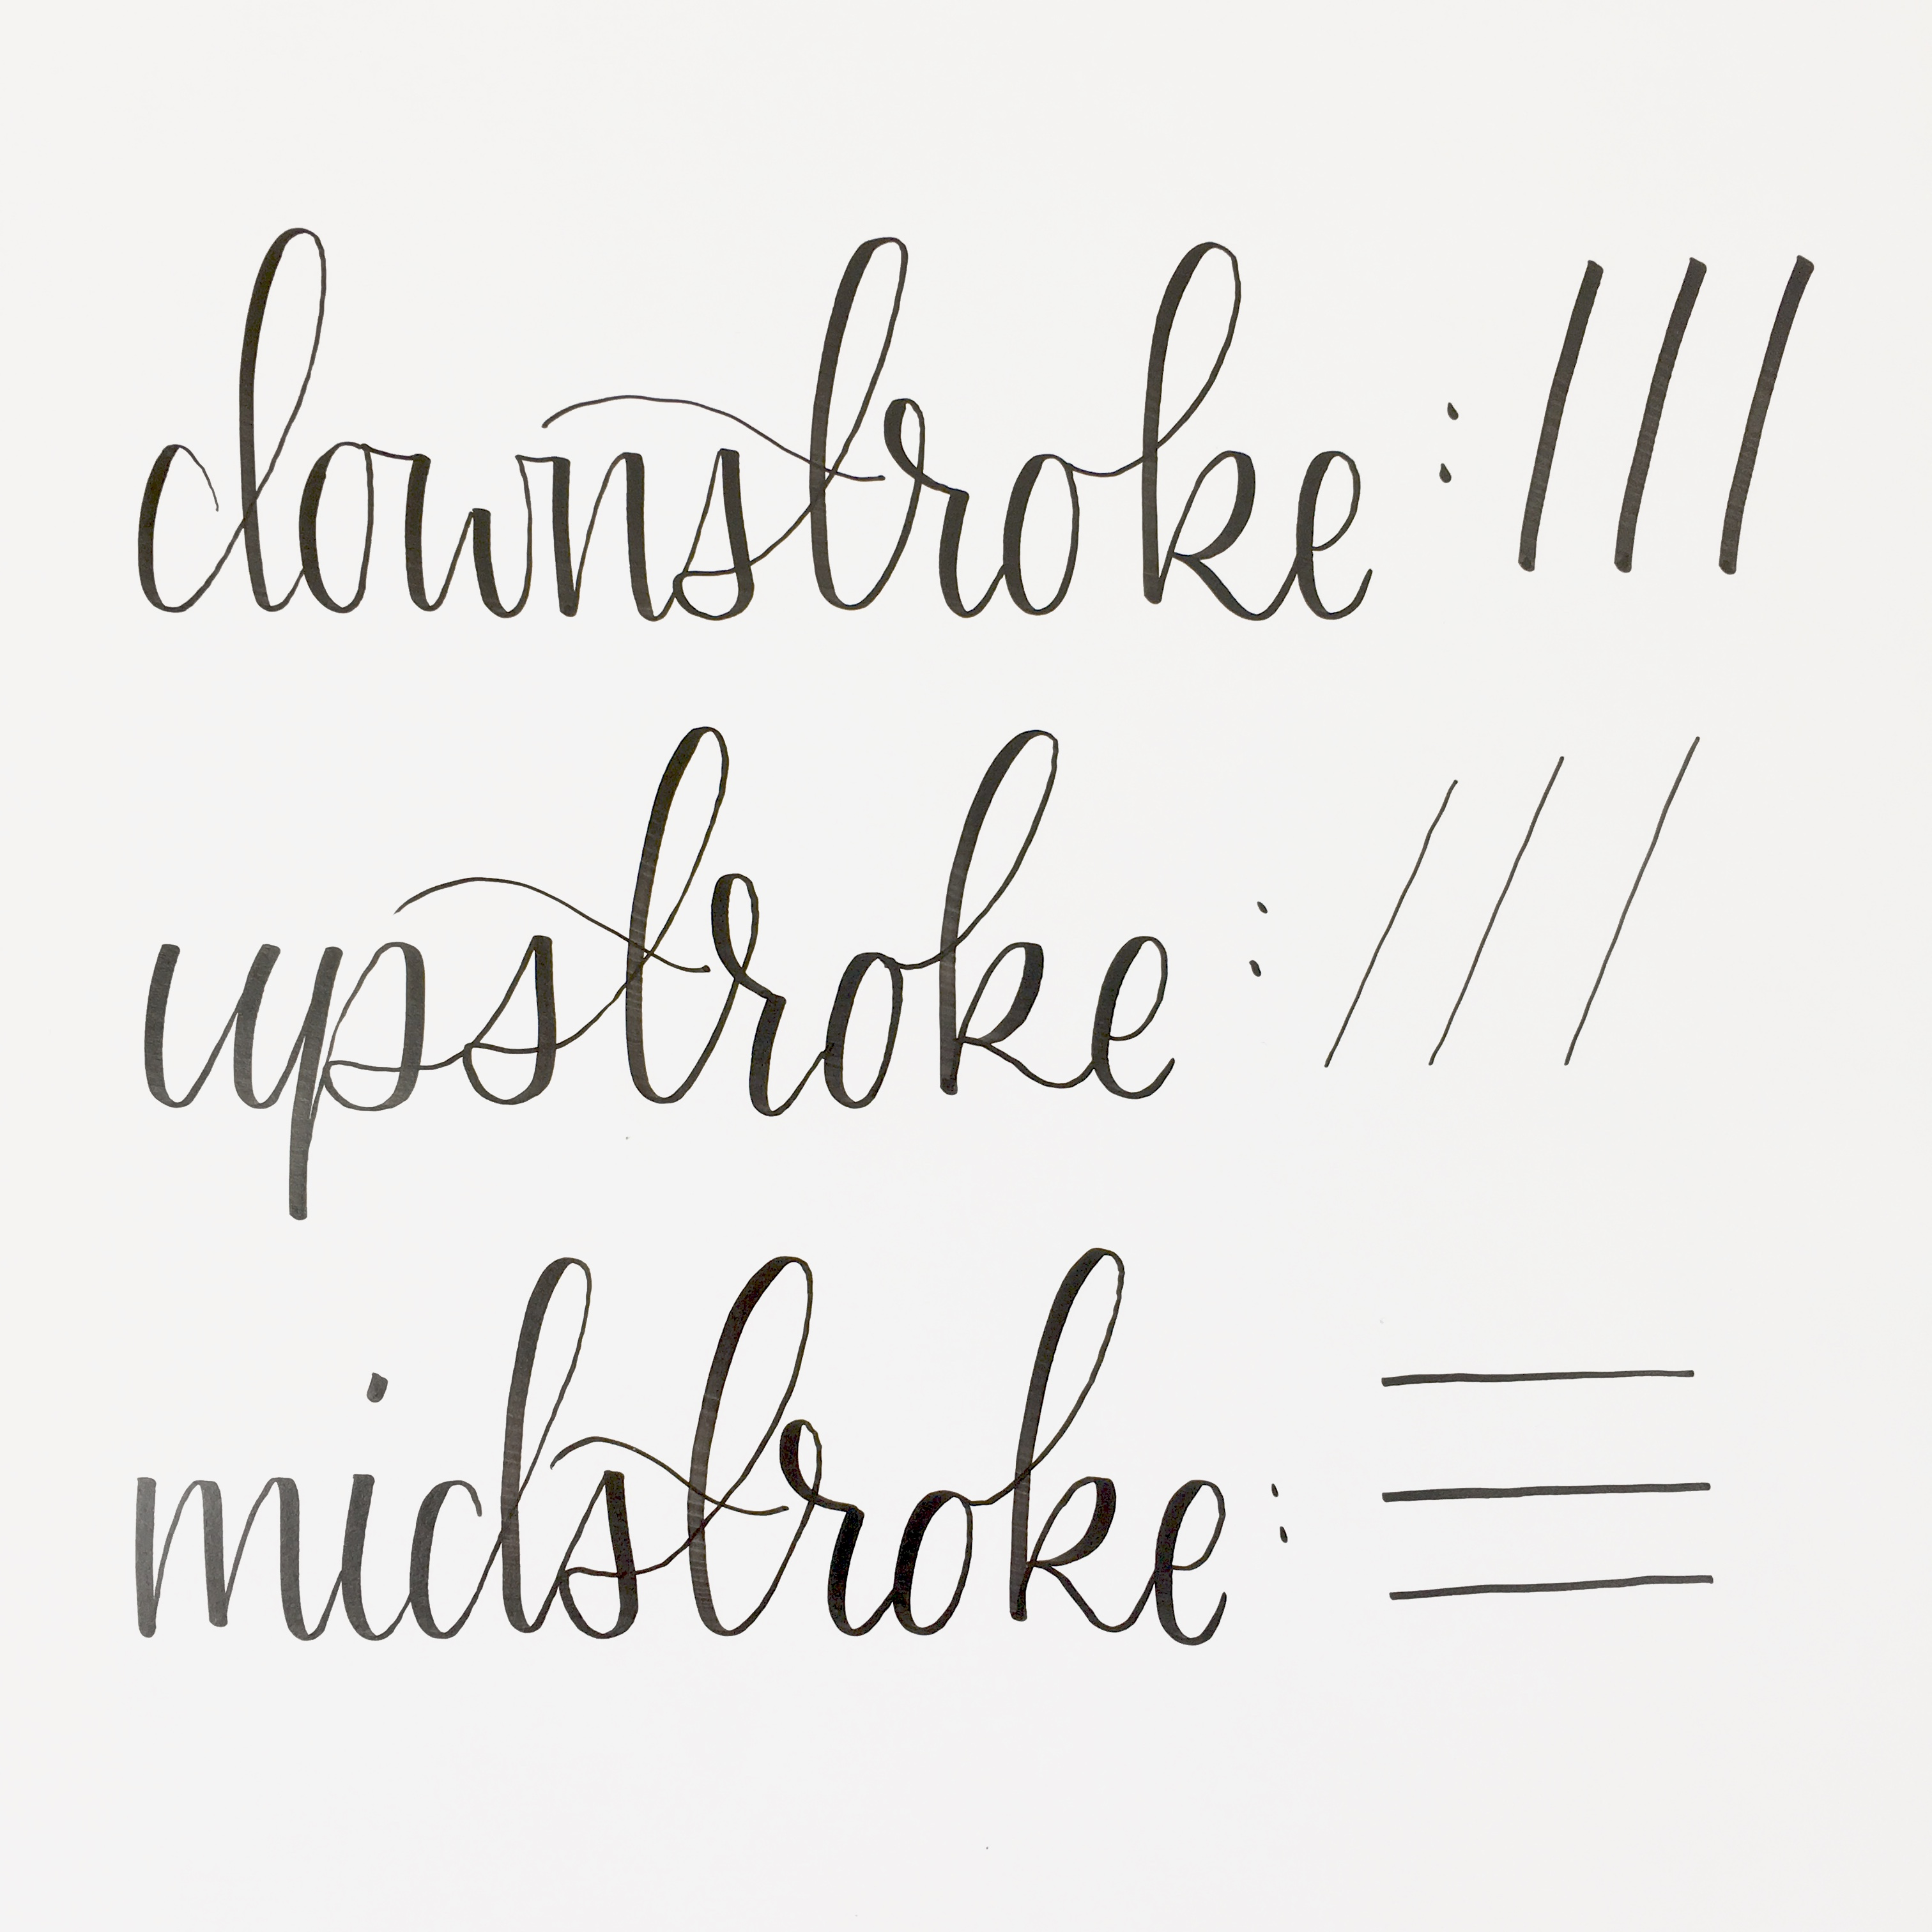 picture relating to Printable Calligraphy Worksheets identified as Brush Pen Calligraphy Fundamental principles- Additionally Free of charge Printable Train